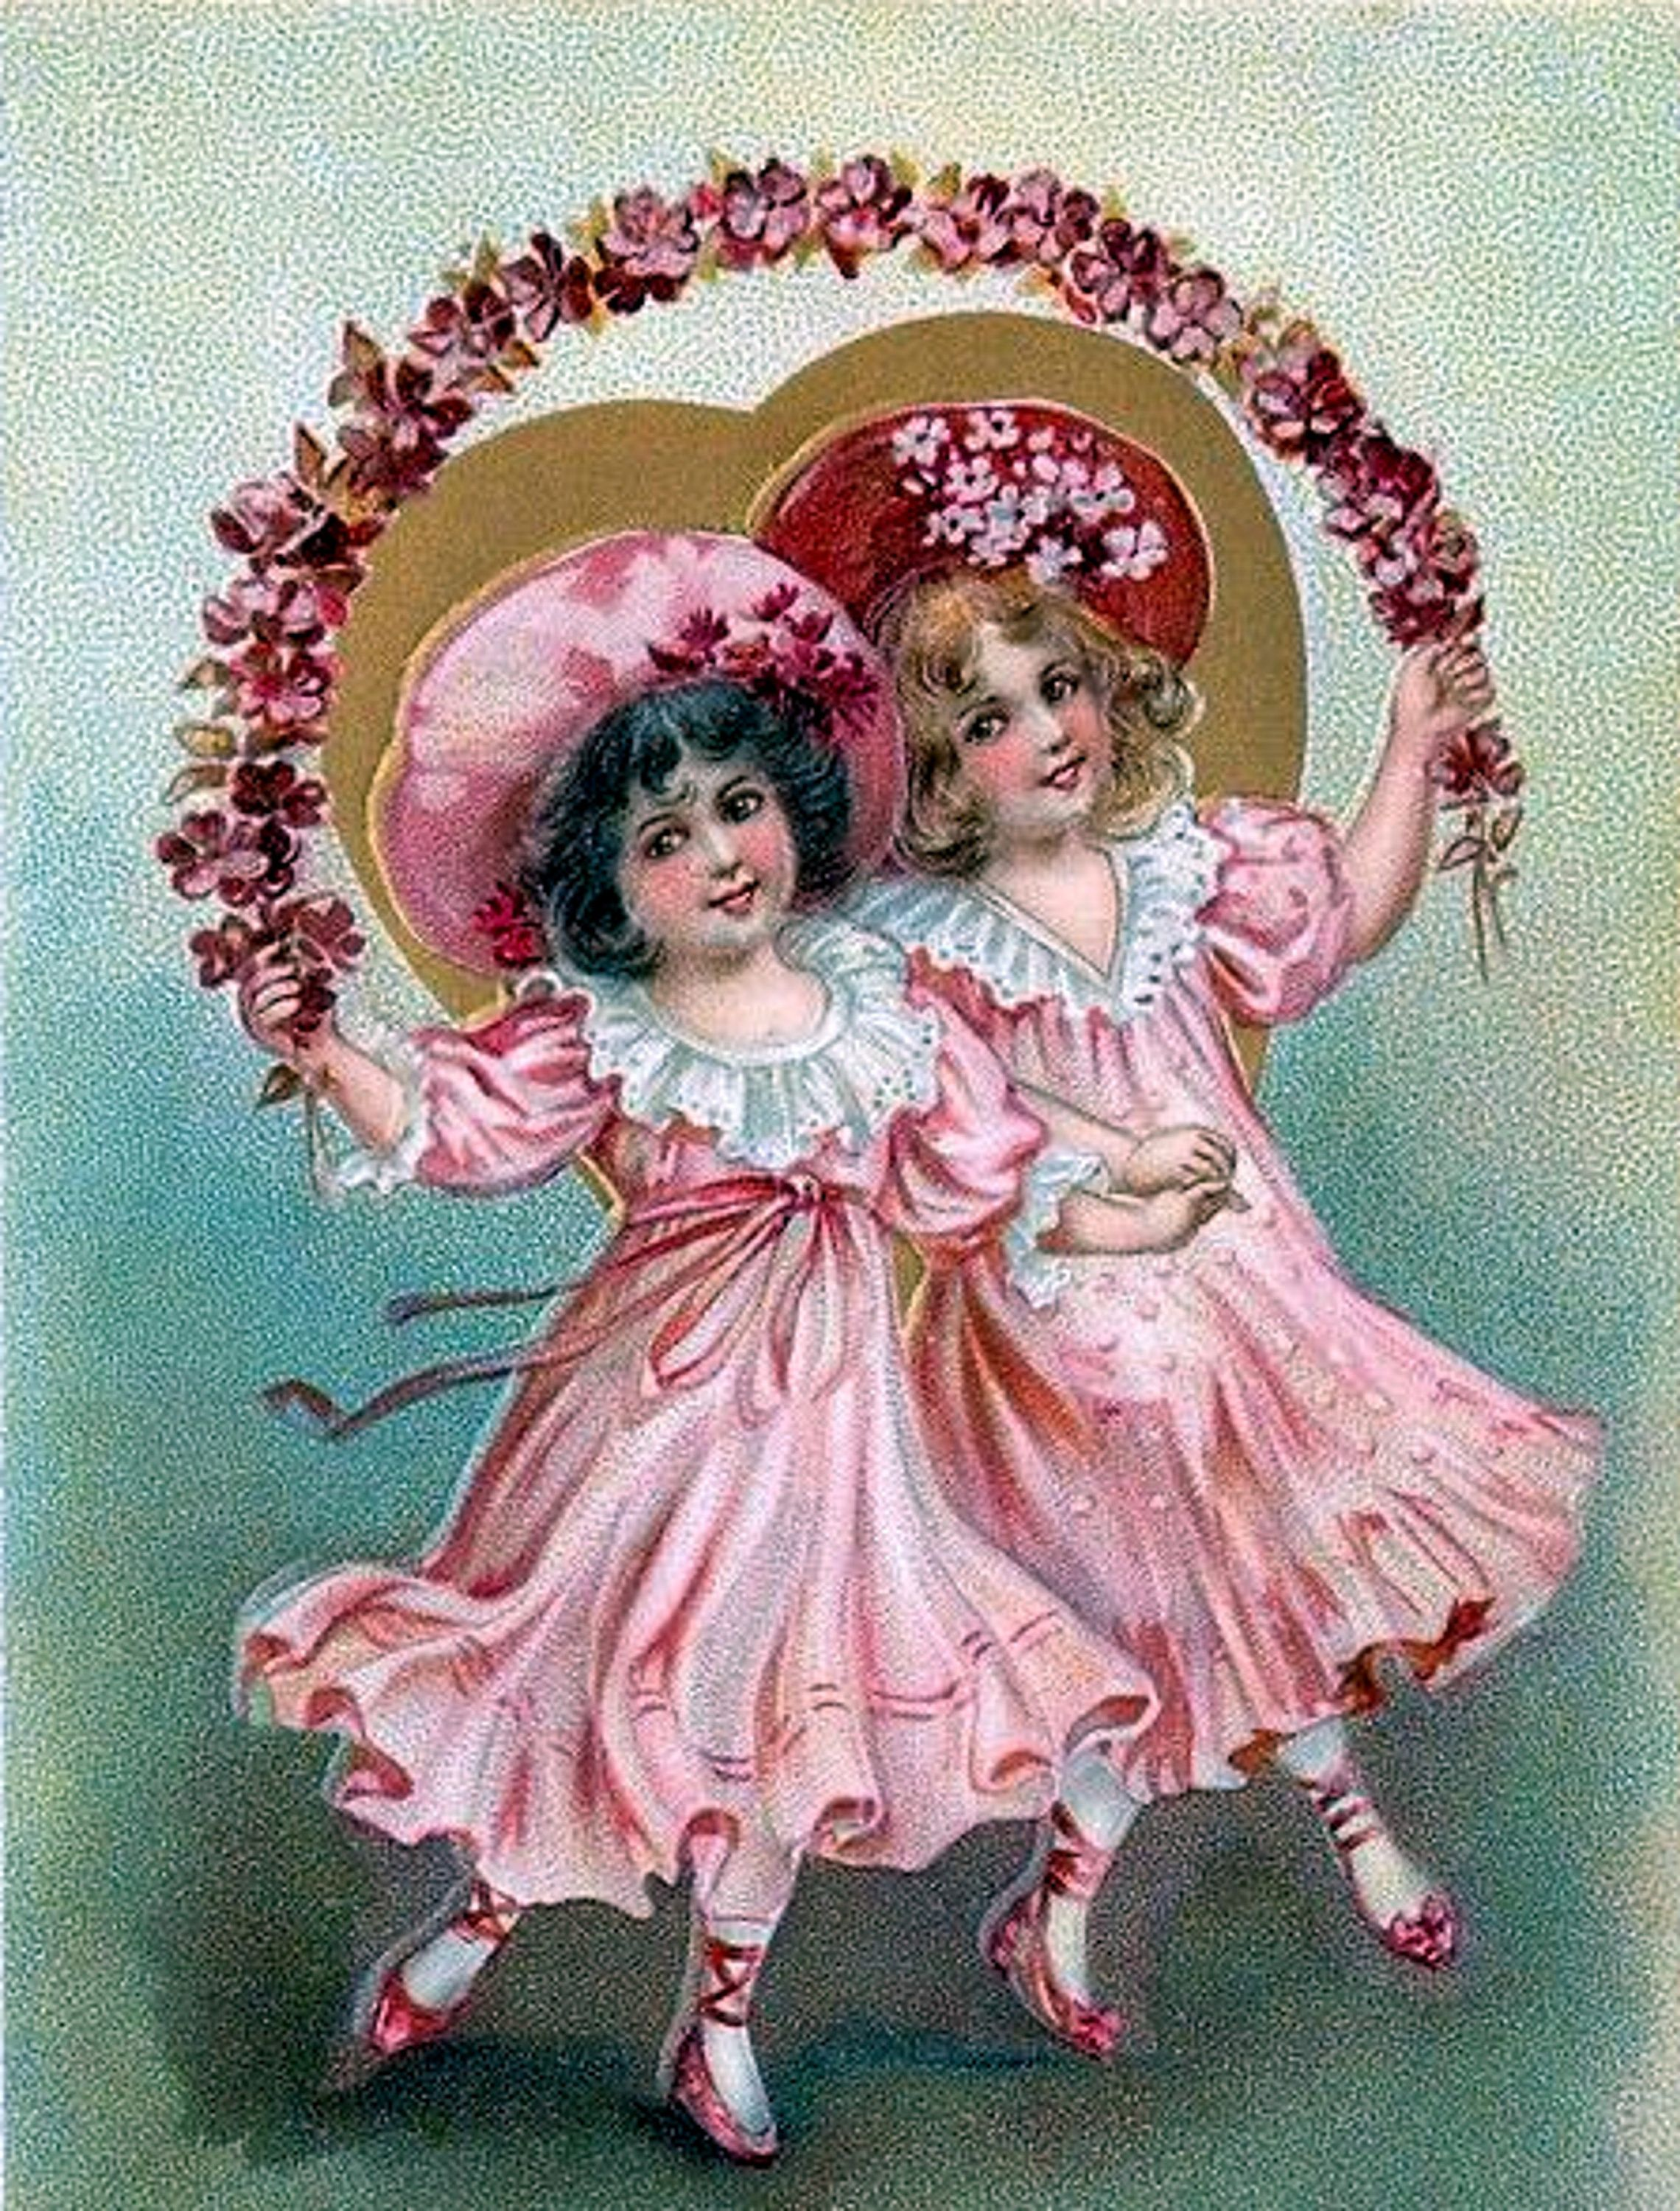 Valentine/'s Day Fabric Block Vintage Postcard on Fabric Cupids Pink Roses Heart